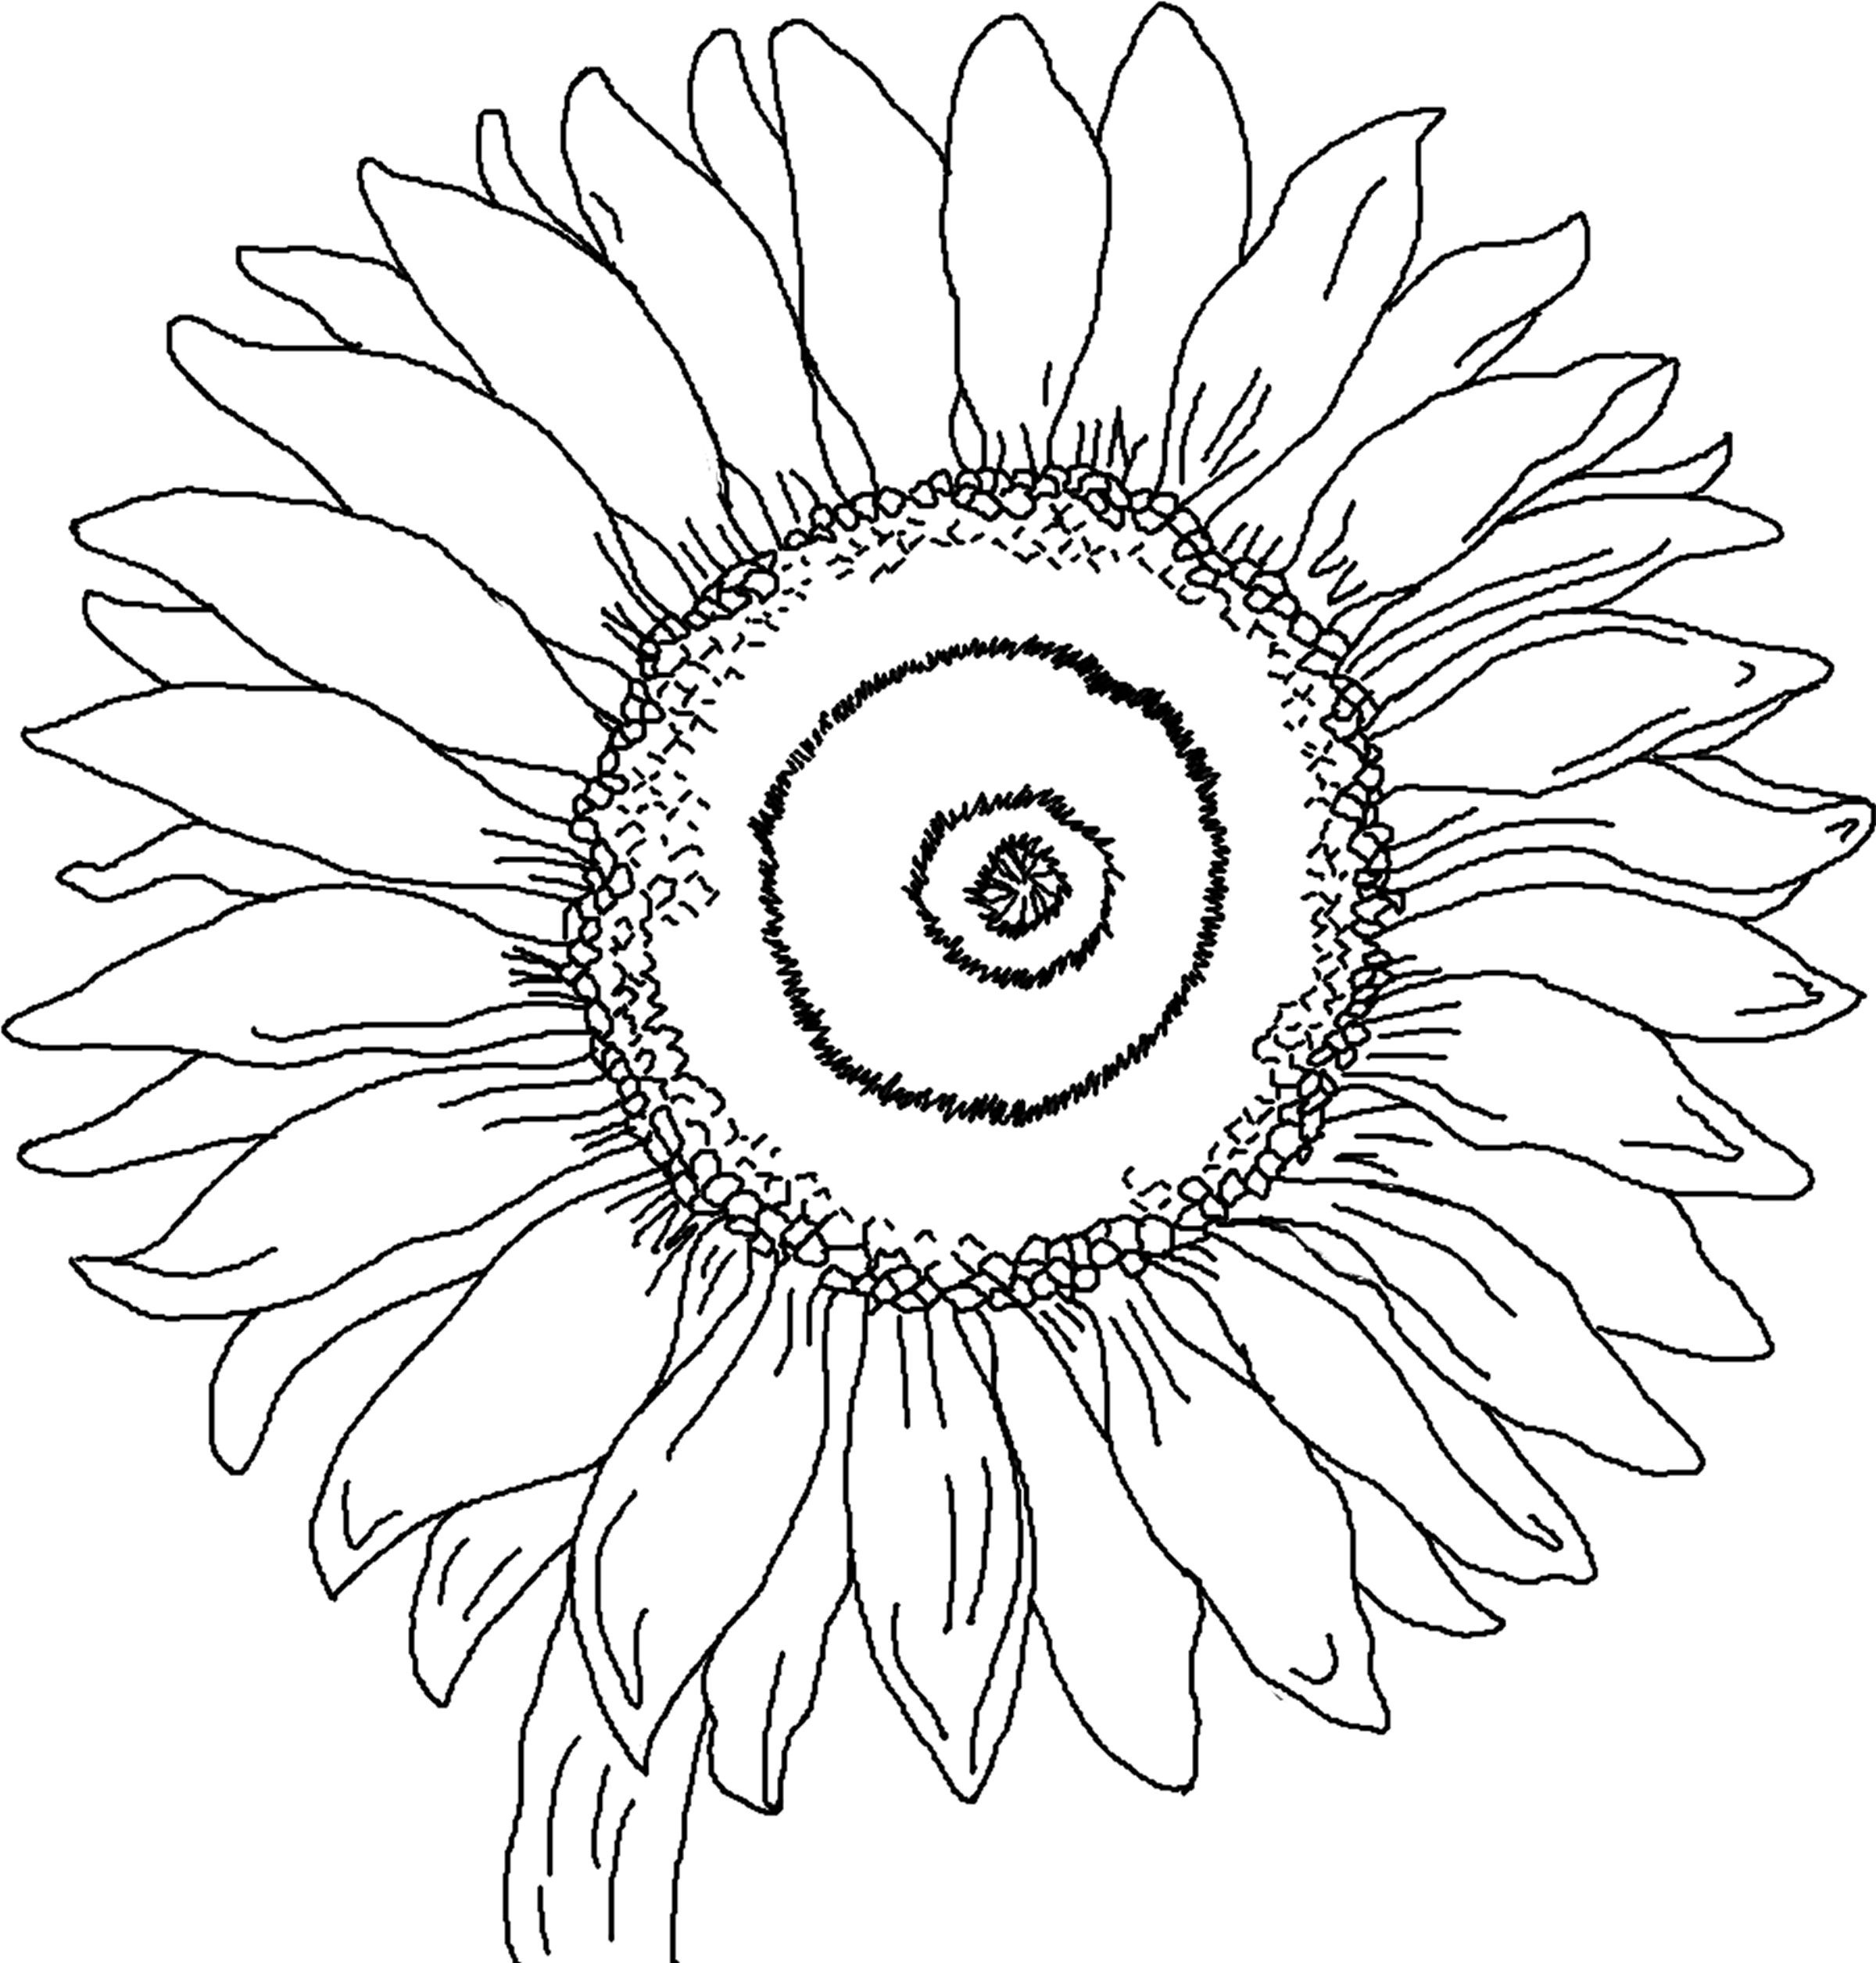 children coloring book pages - photo#35